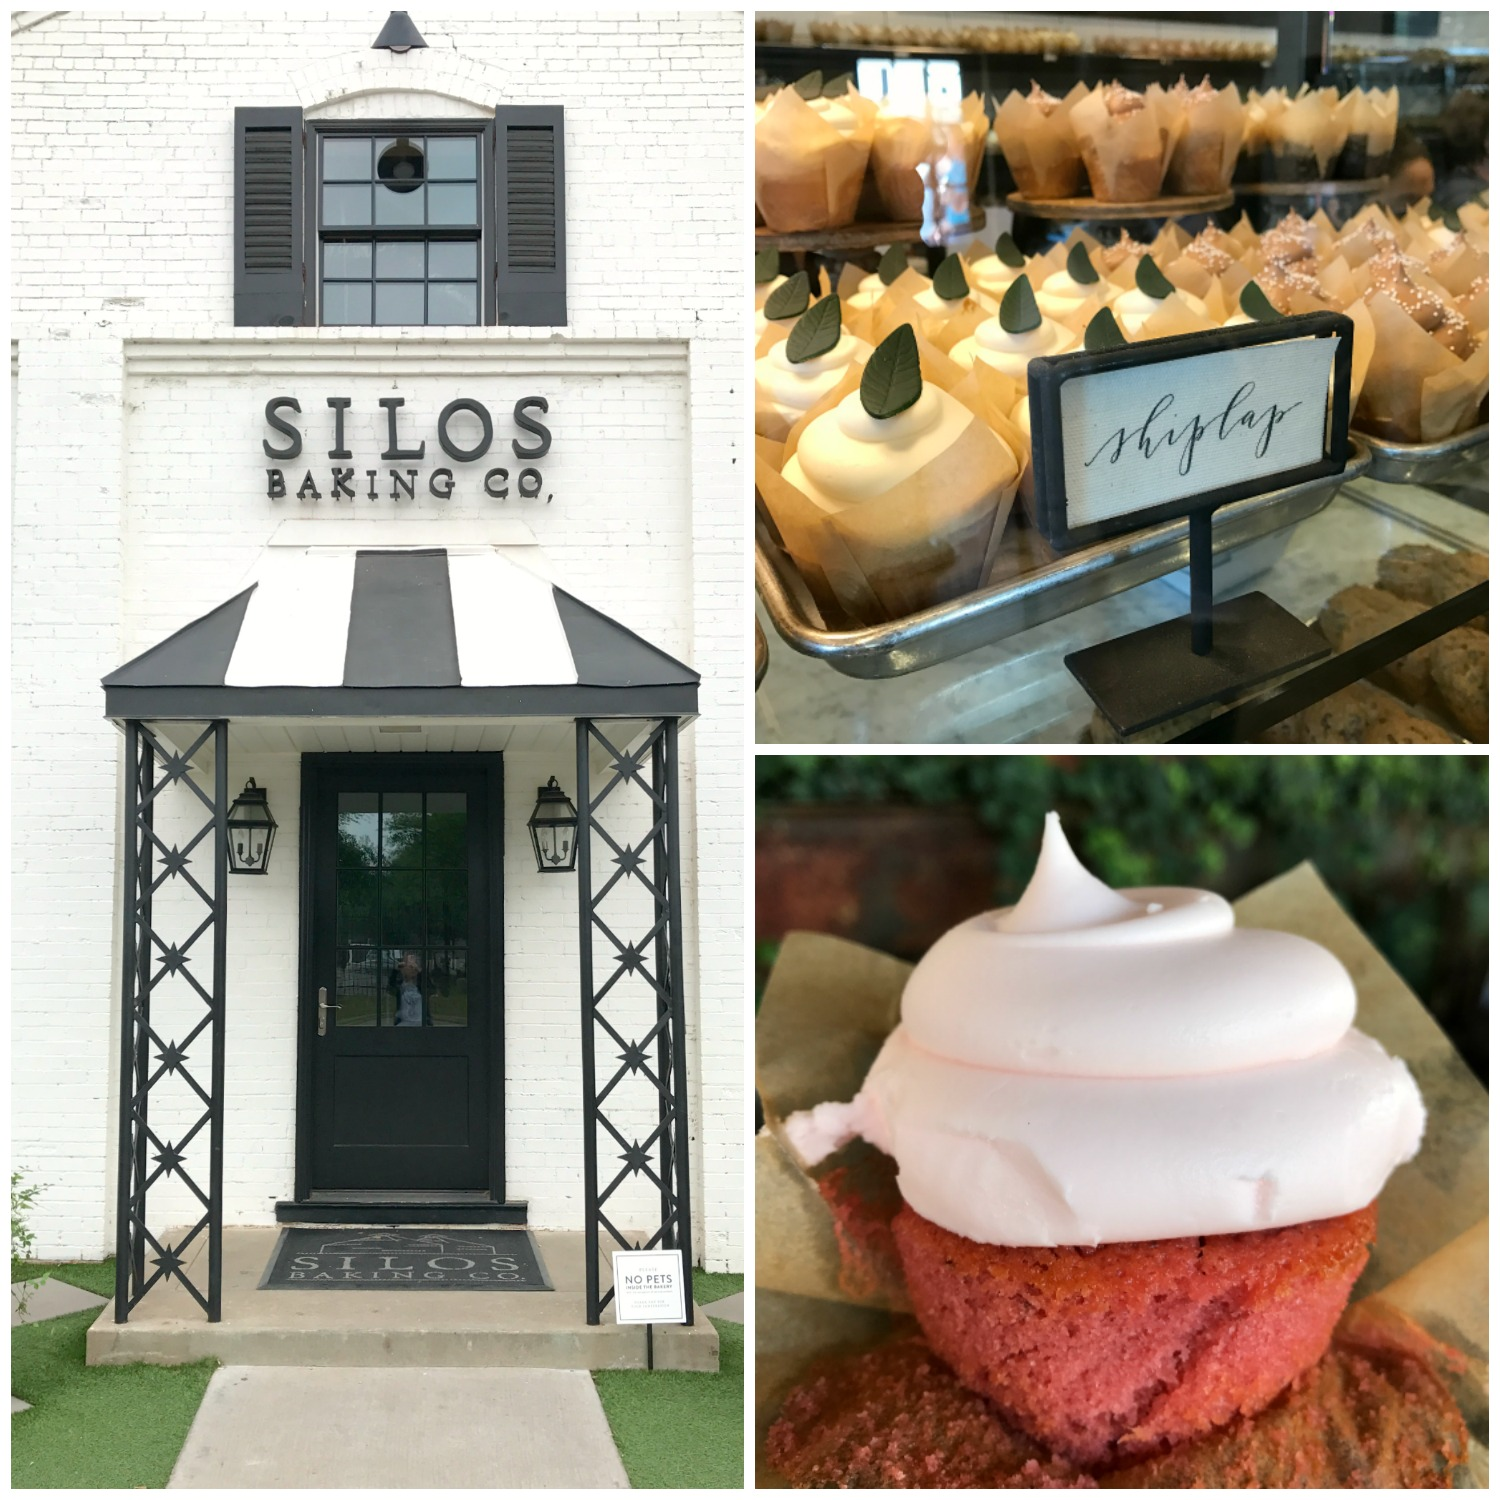 what to expect at silos baking co  at magnolia